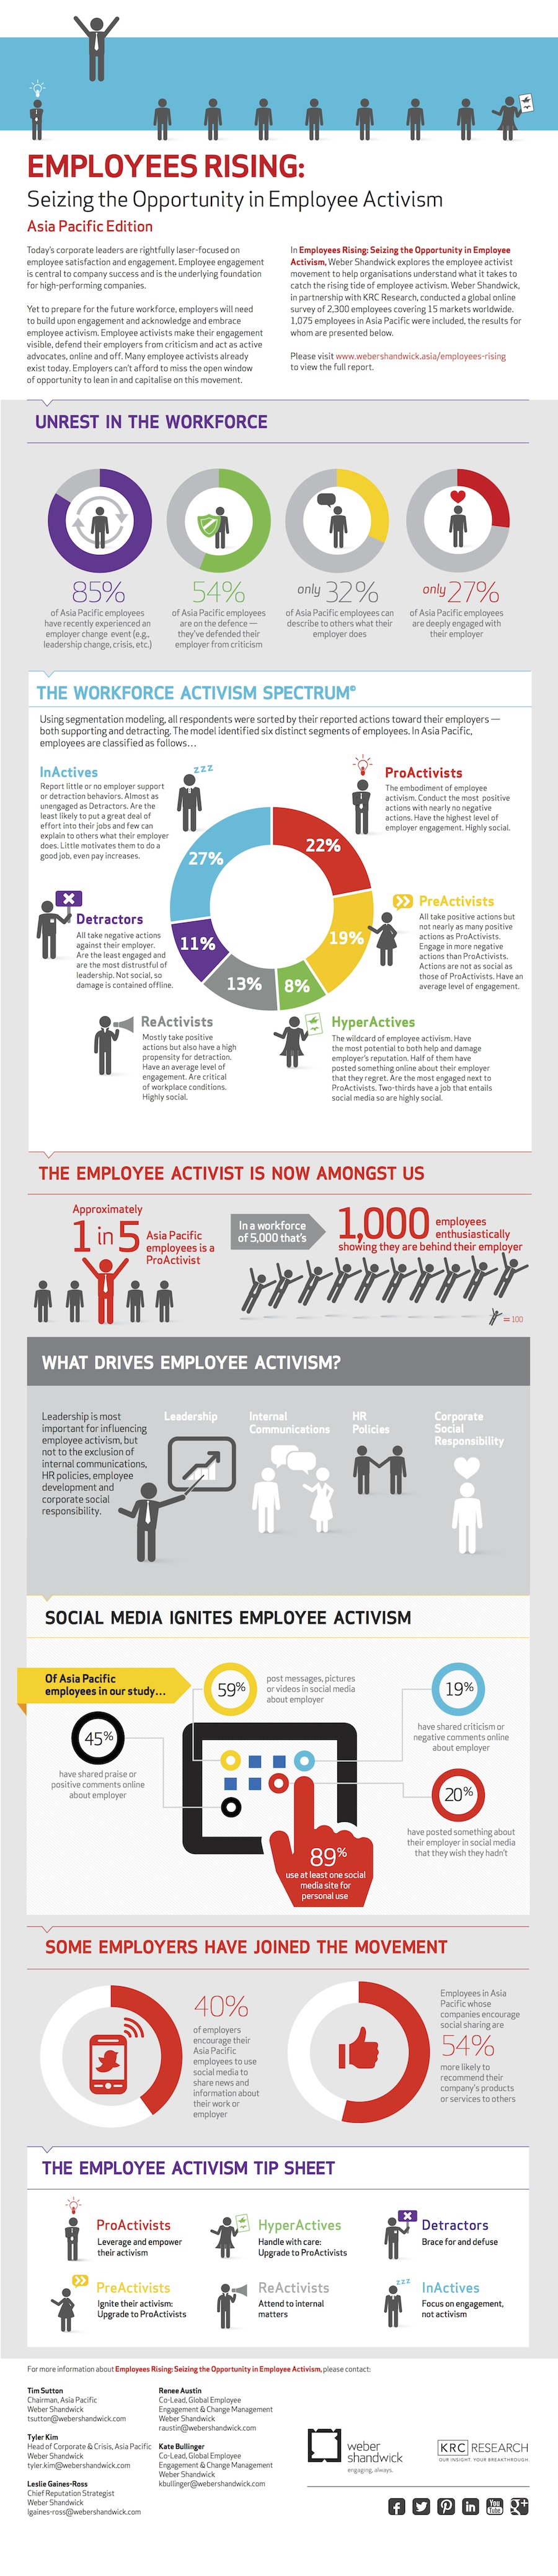 Weber Shandwick_Employees Rising infographic2